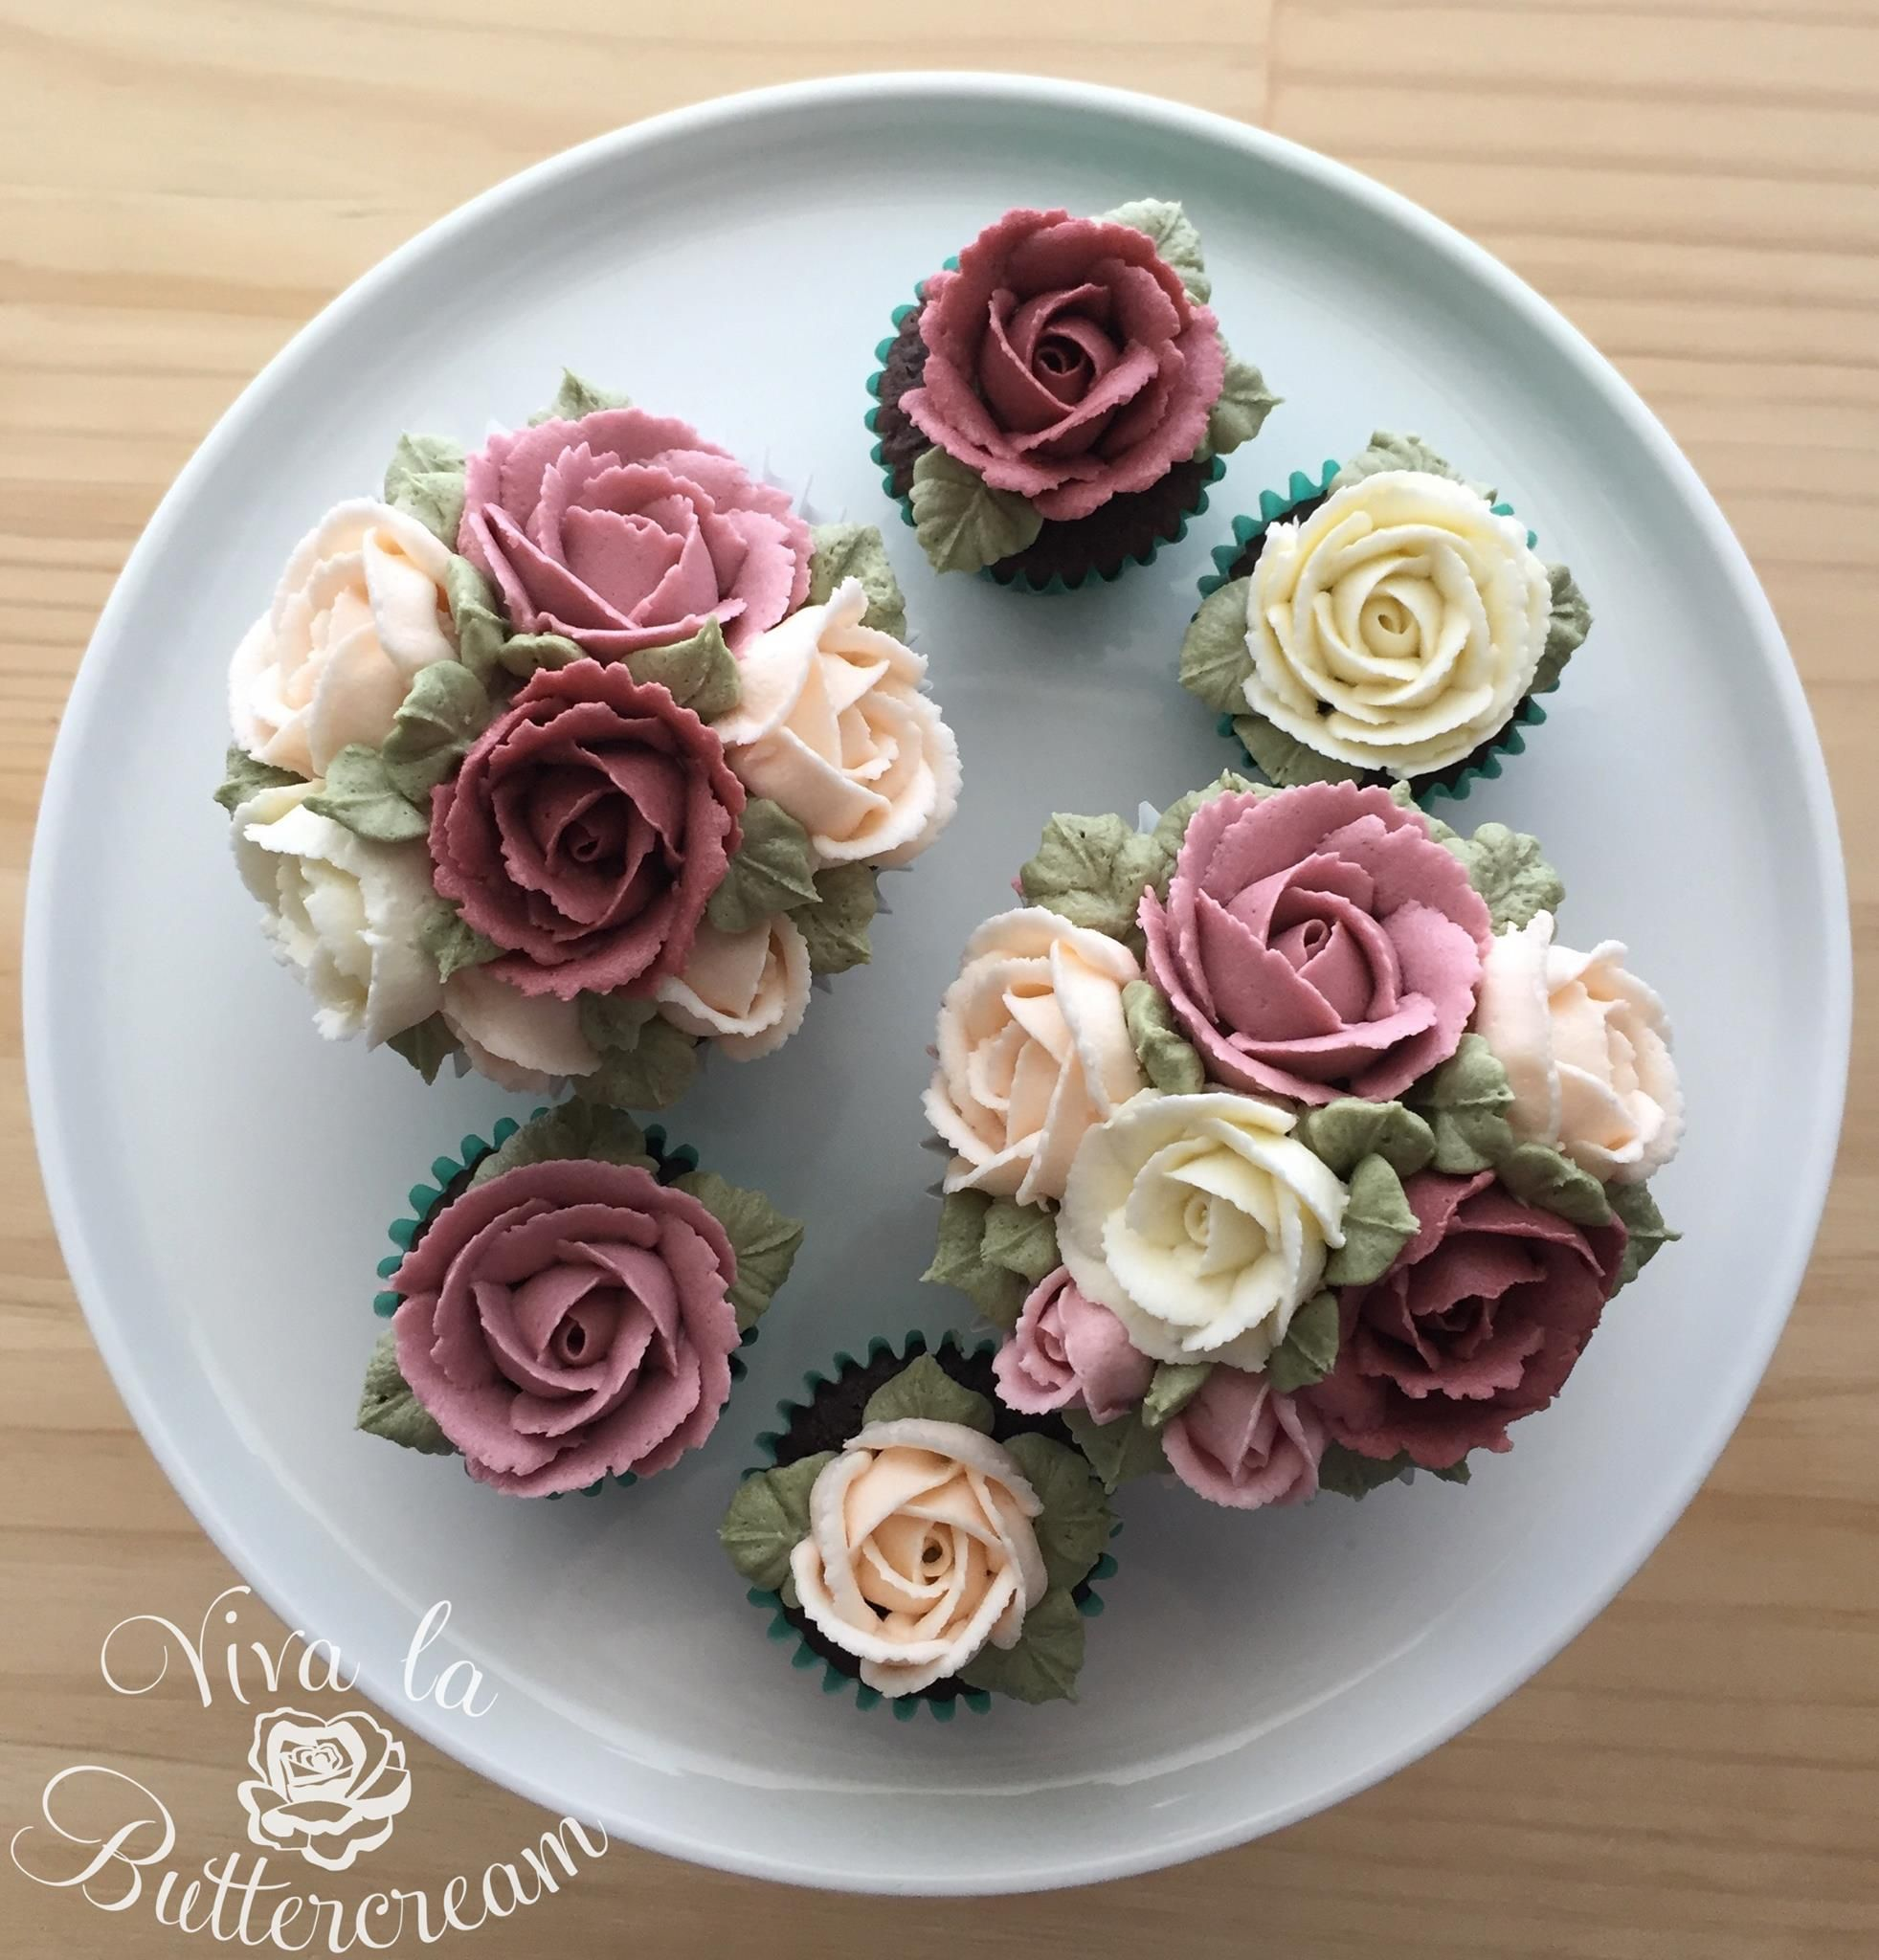 Baking Recipes Desserts Cupcakes Buttercream Frosting